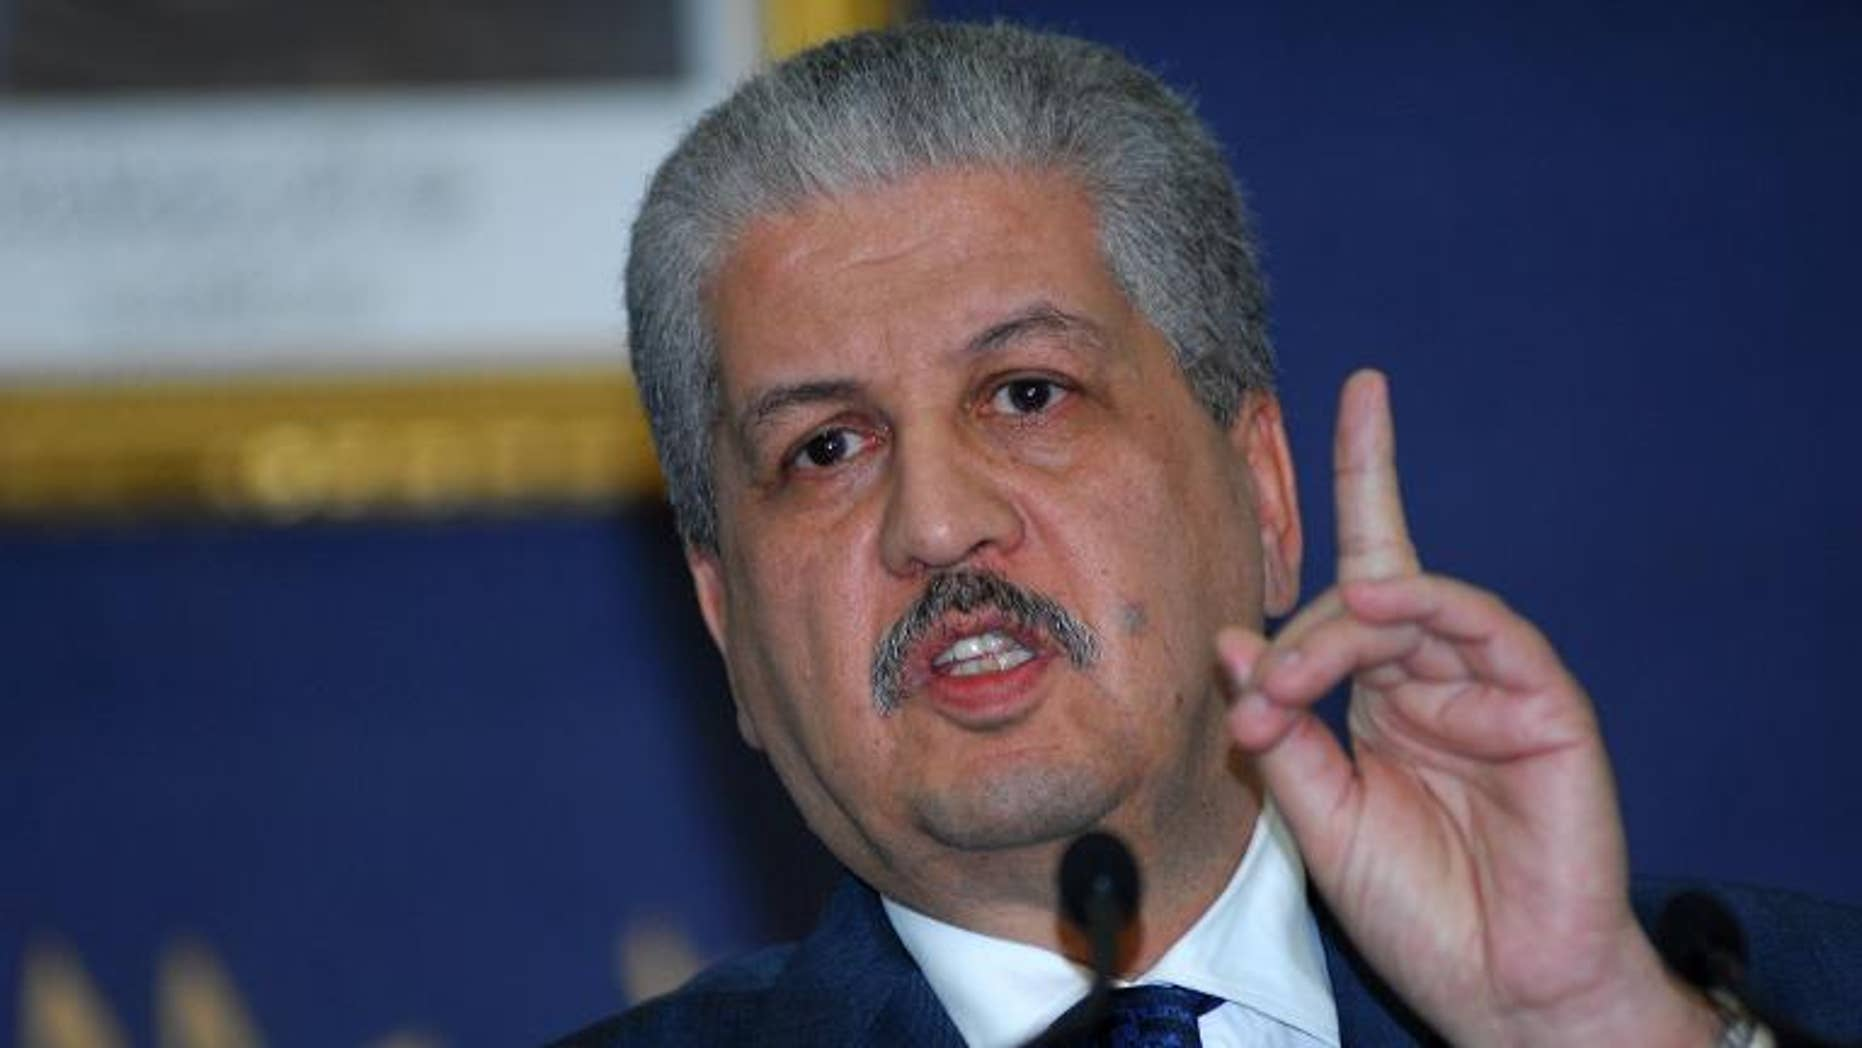 Algerian Prime Minister Abdelmalek Sellal speaks during a press conference in Algiers on January 21, 2012.